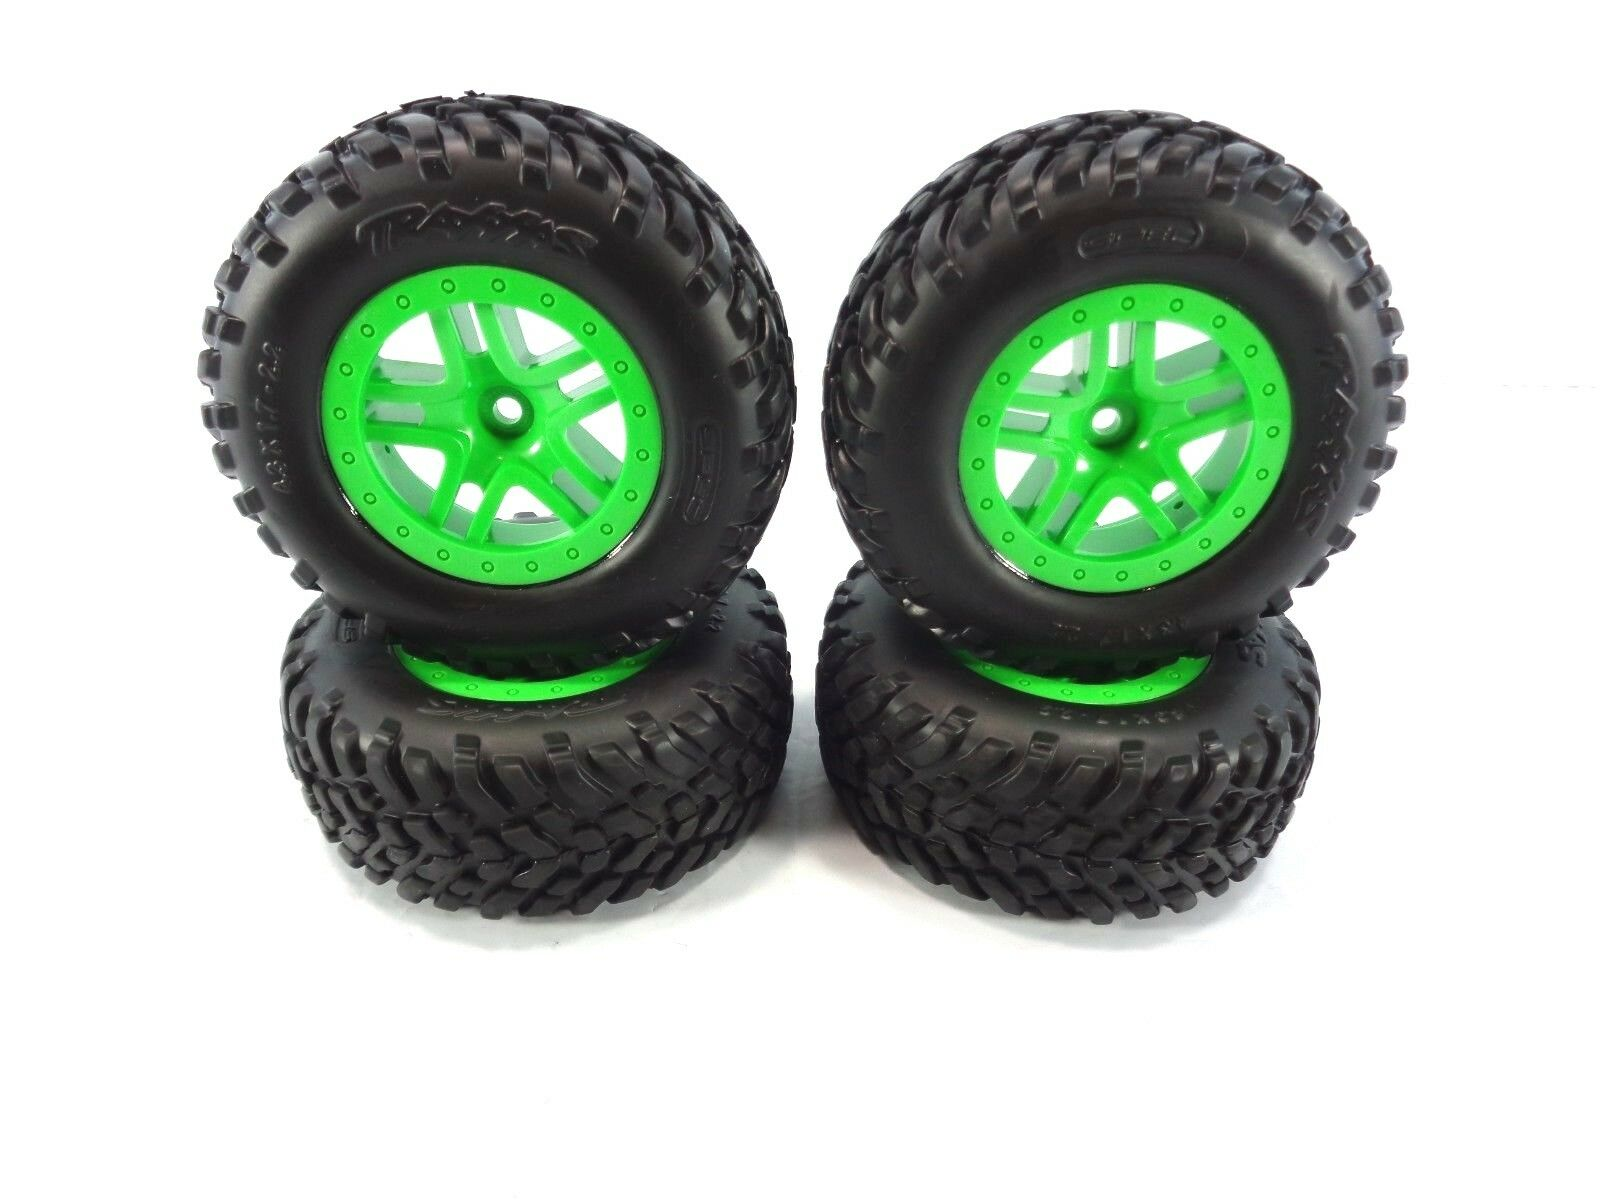 NEW Traxxas 4x4 Slash Set of 4 Factory verde 12mm Wheels and Spec Tires 4wd